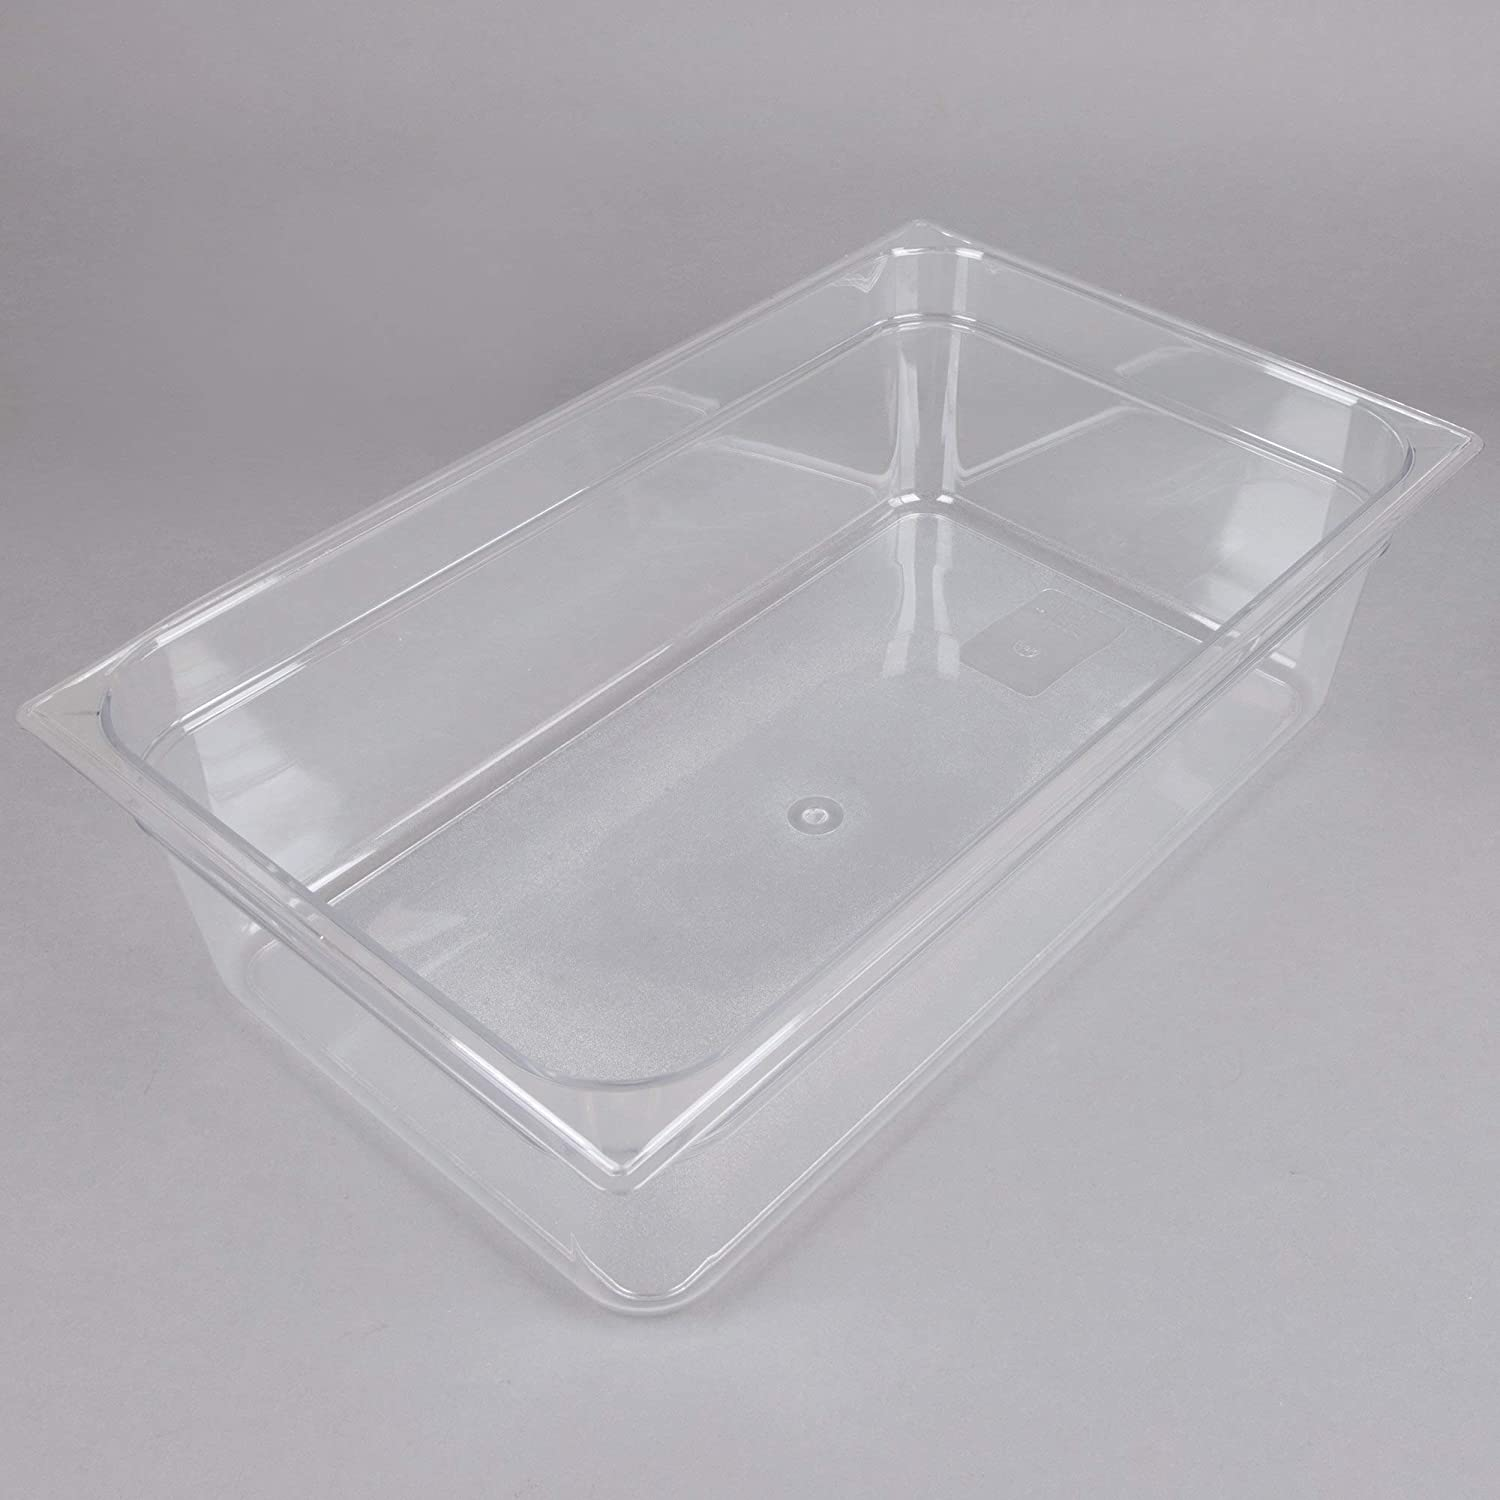 CAL-MIL 477-12CL Folding Ice Housing Display, 12